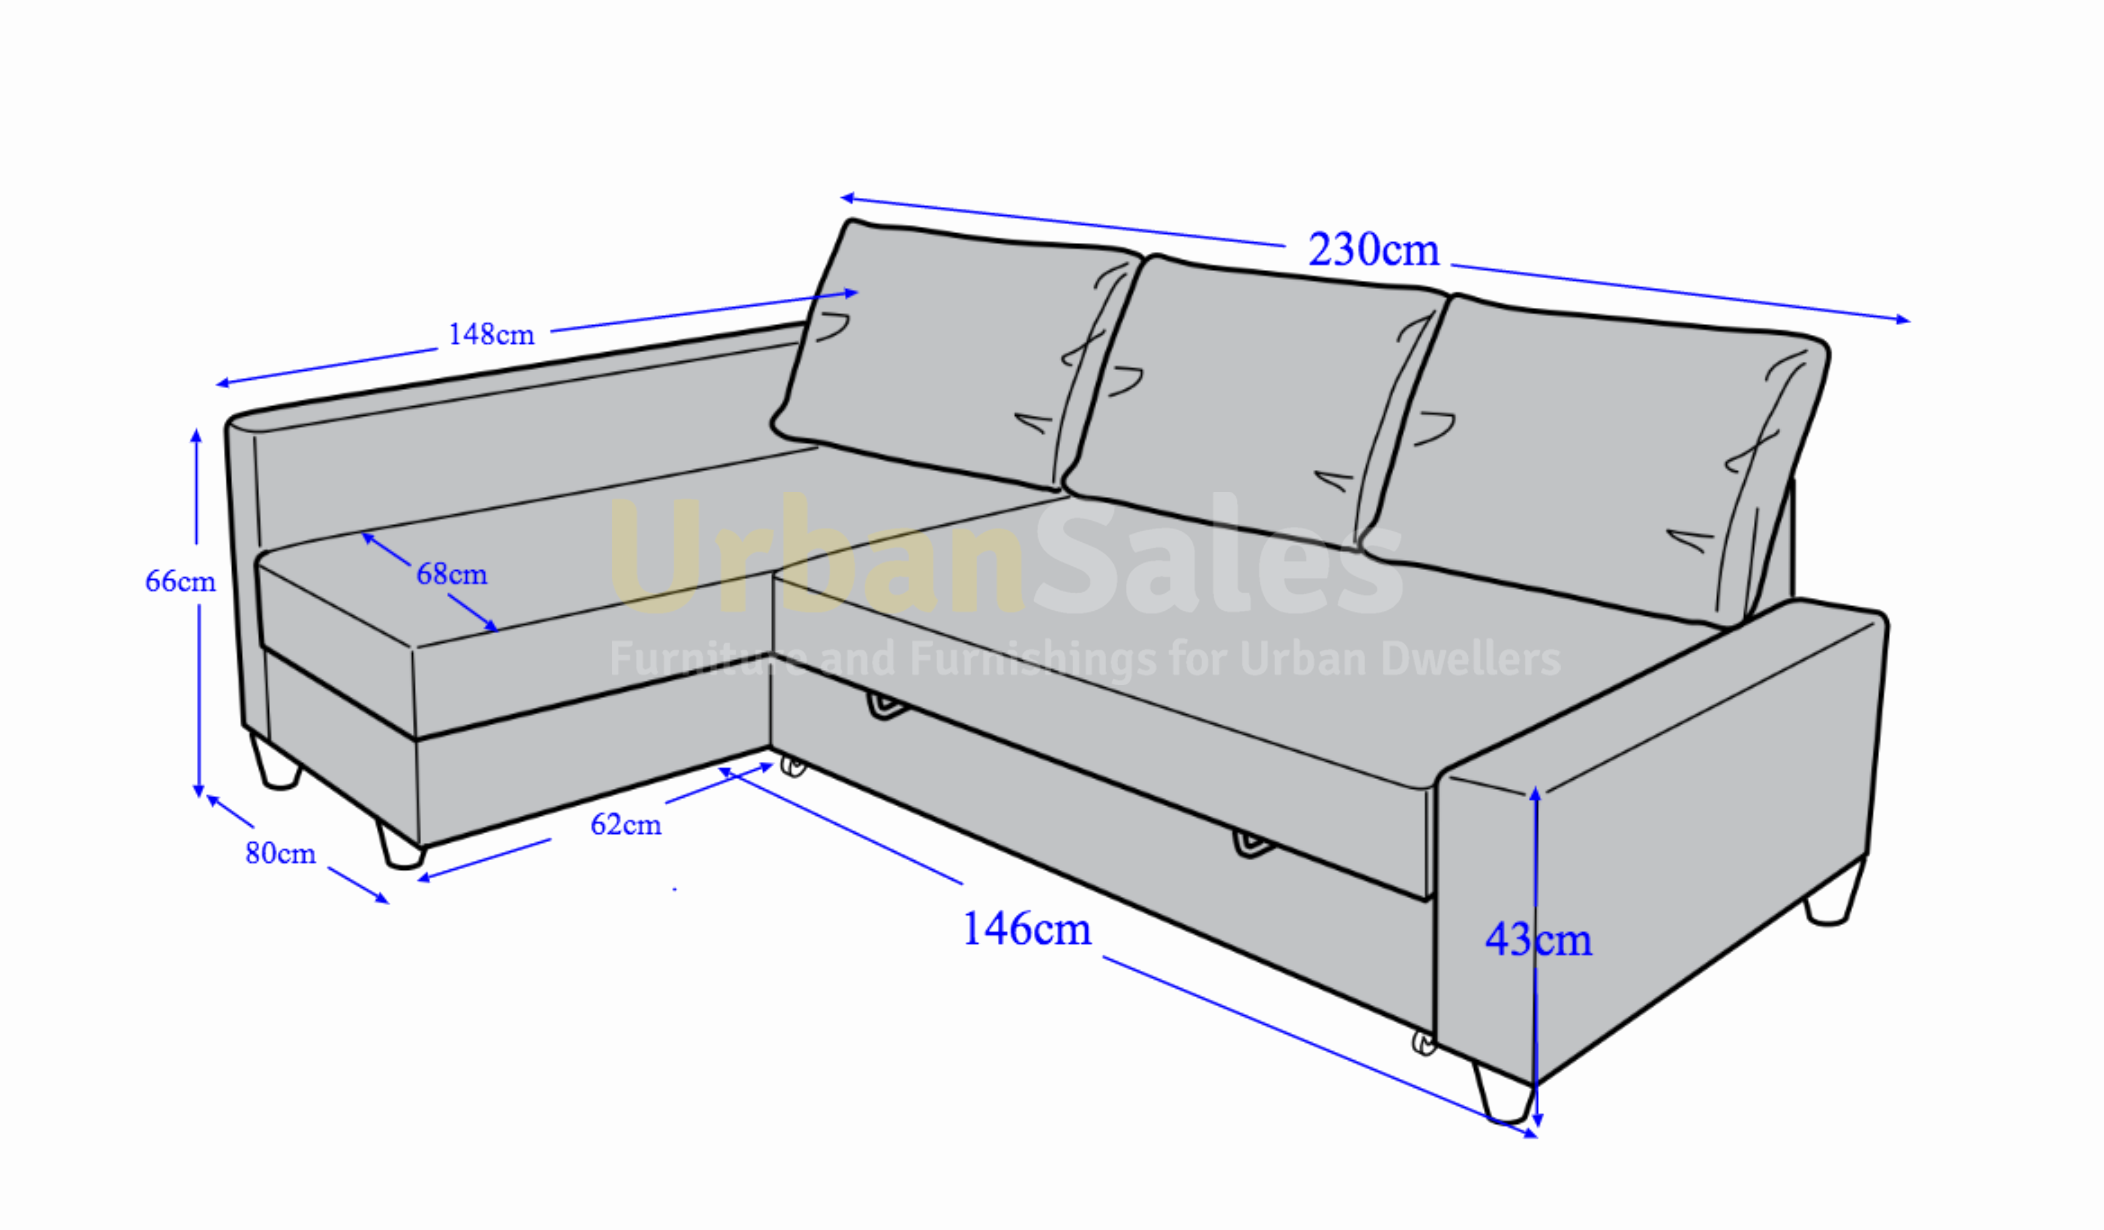 23 Schone Ikea Ektorp Sofa Bett Abdeckungen 2 Sitzer Sofamodelle Info In 2020 Small Sofa Sofa Bed Ikea Sofa Bed